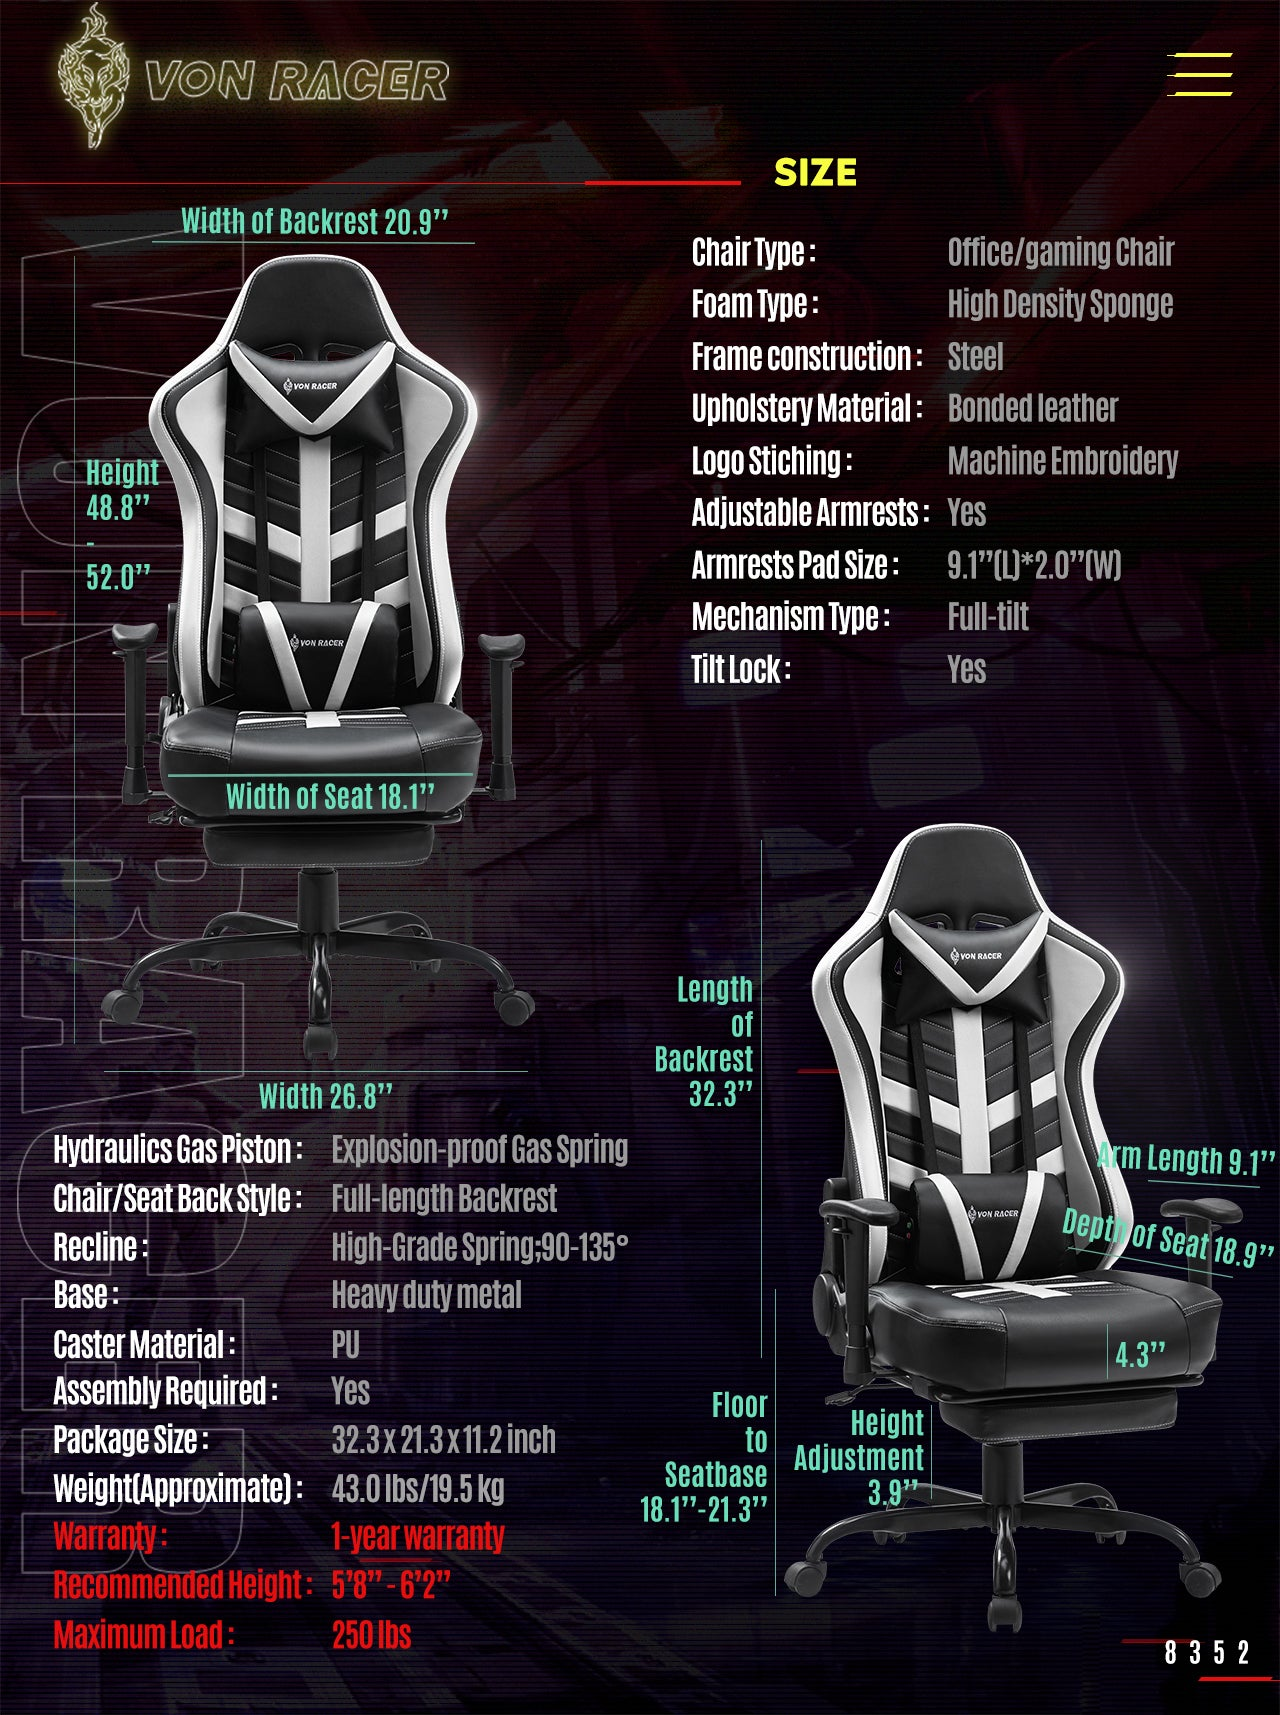 Von Racer White Gaming Chair BEETLE 2020 Series Specifications